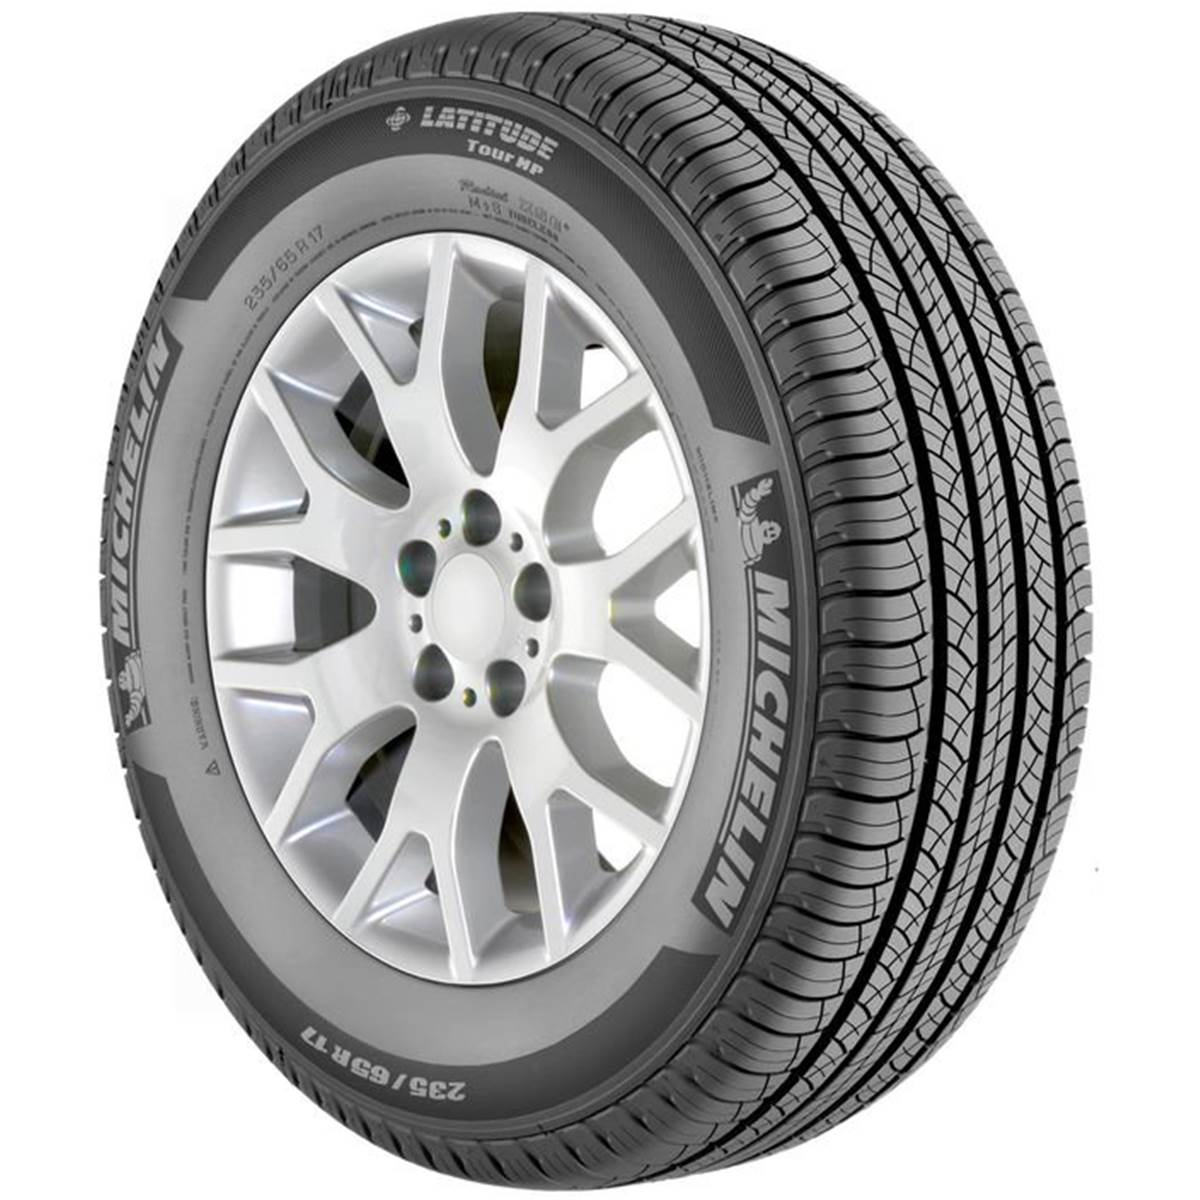 Pneu 4X4 Michelin 215/60R17 96H Latitude Tour Hp